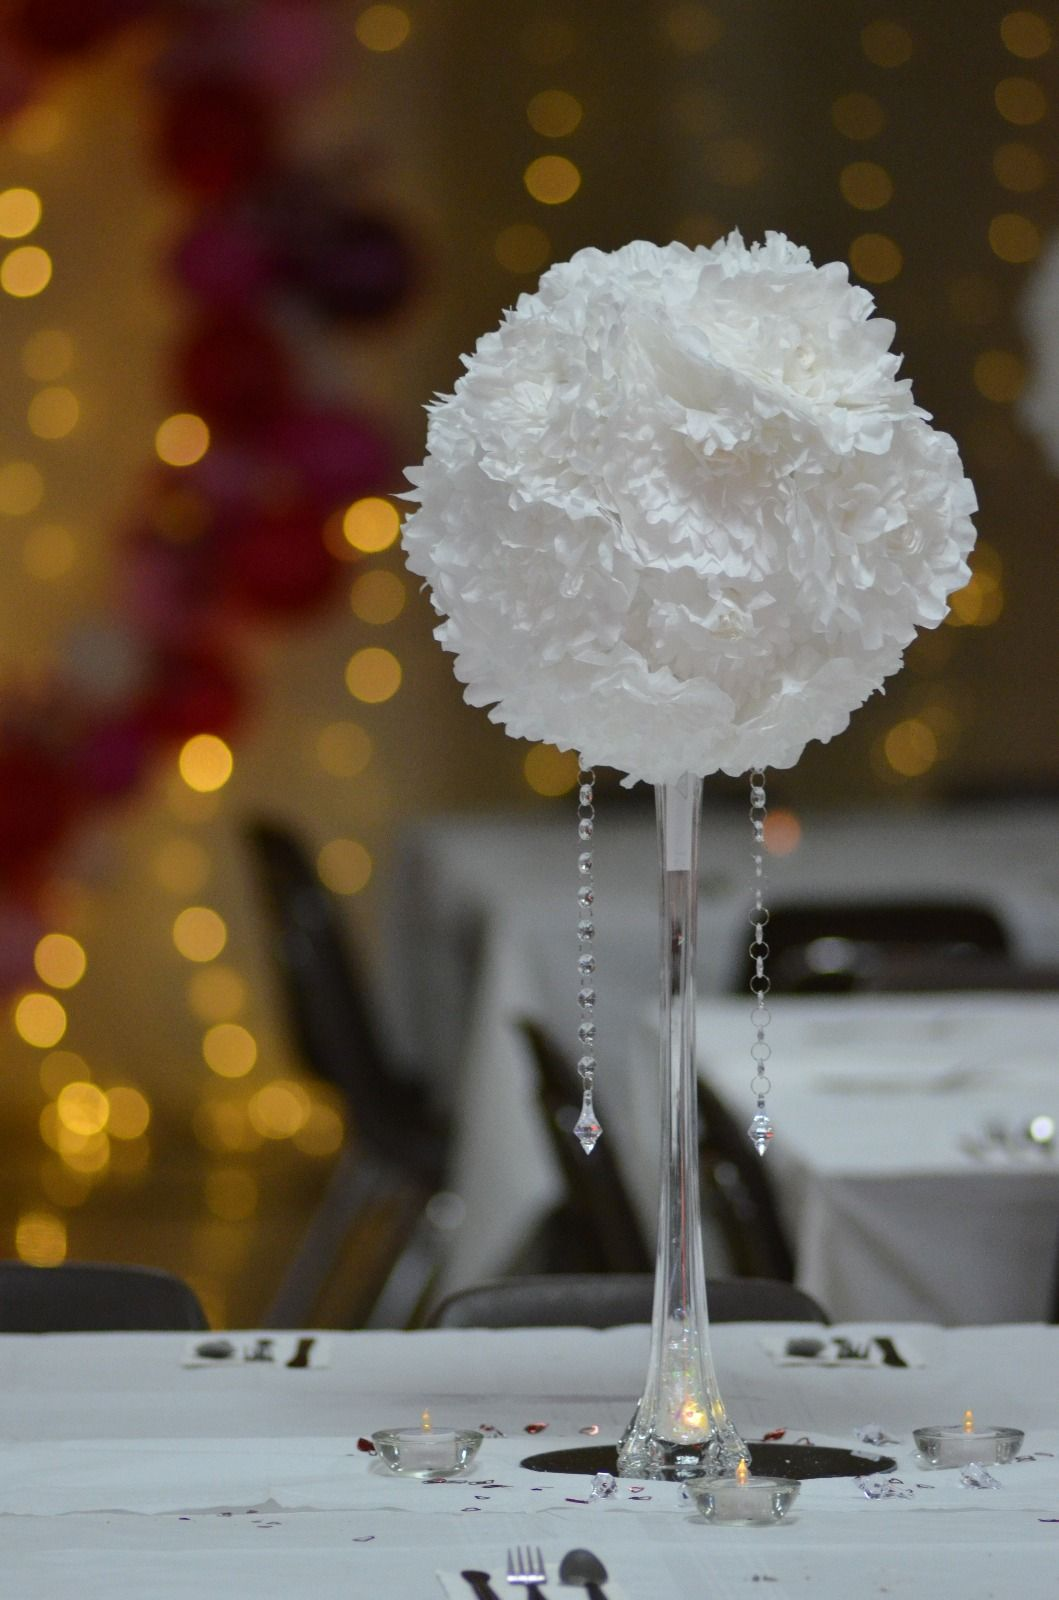 Centerpiece made of coffee filter flowers with a paper